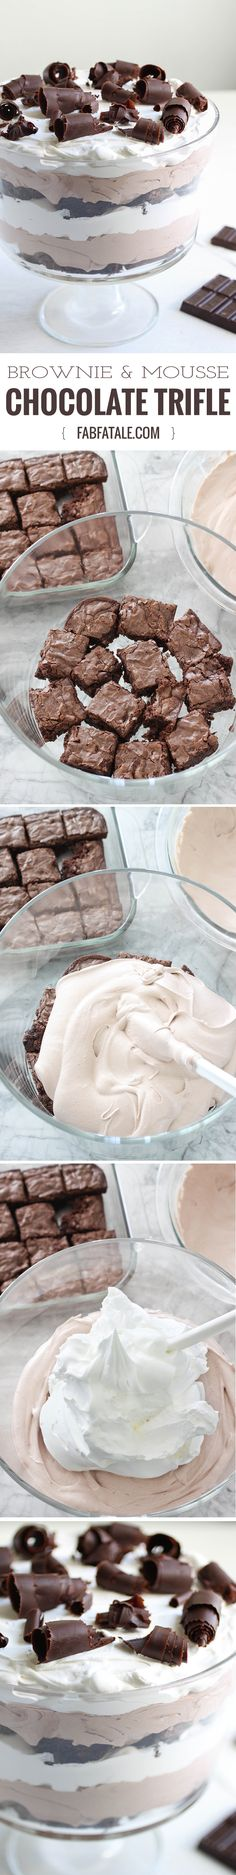 chocolate brownie and mousse trifle